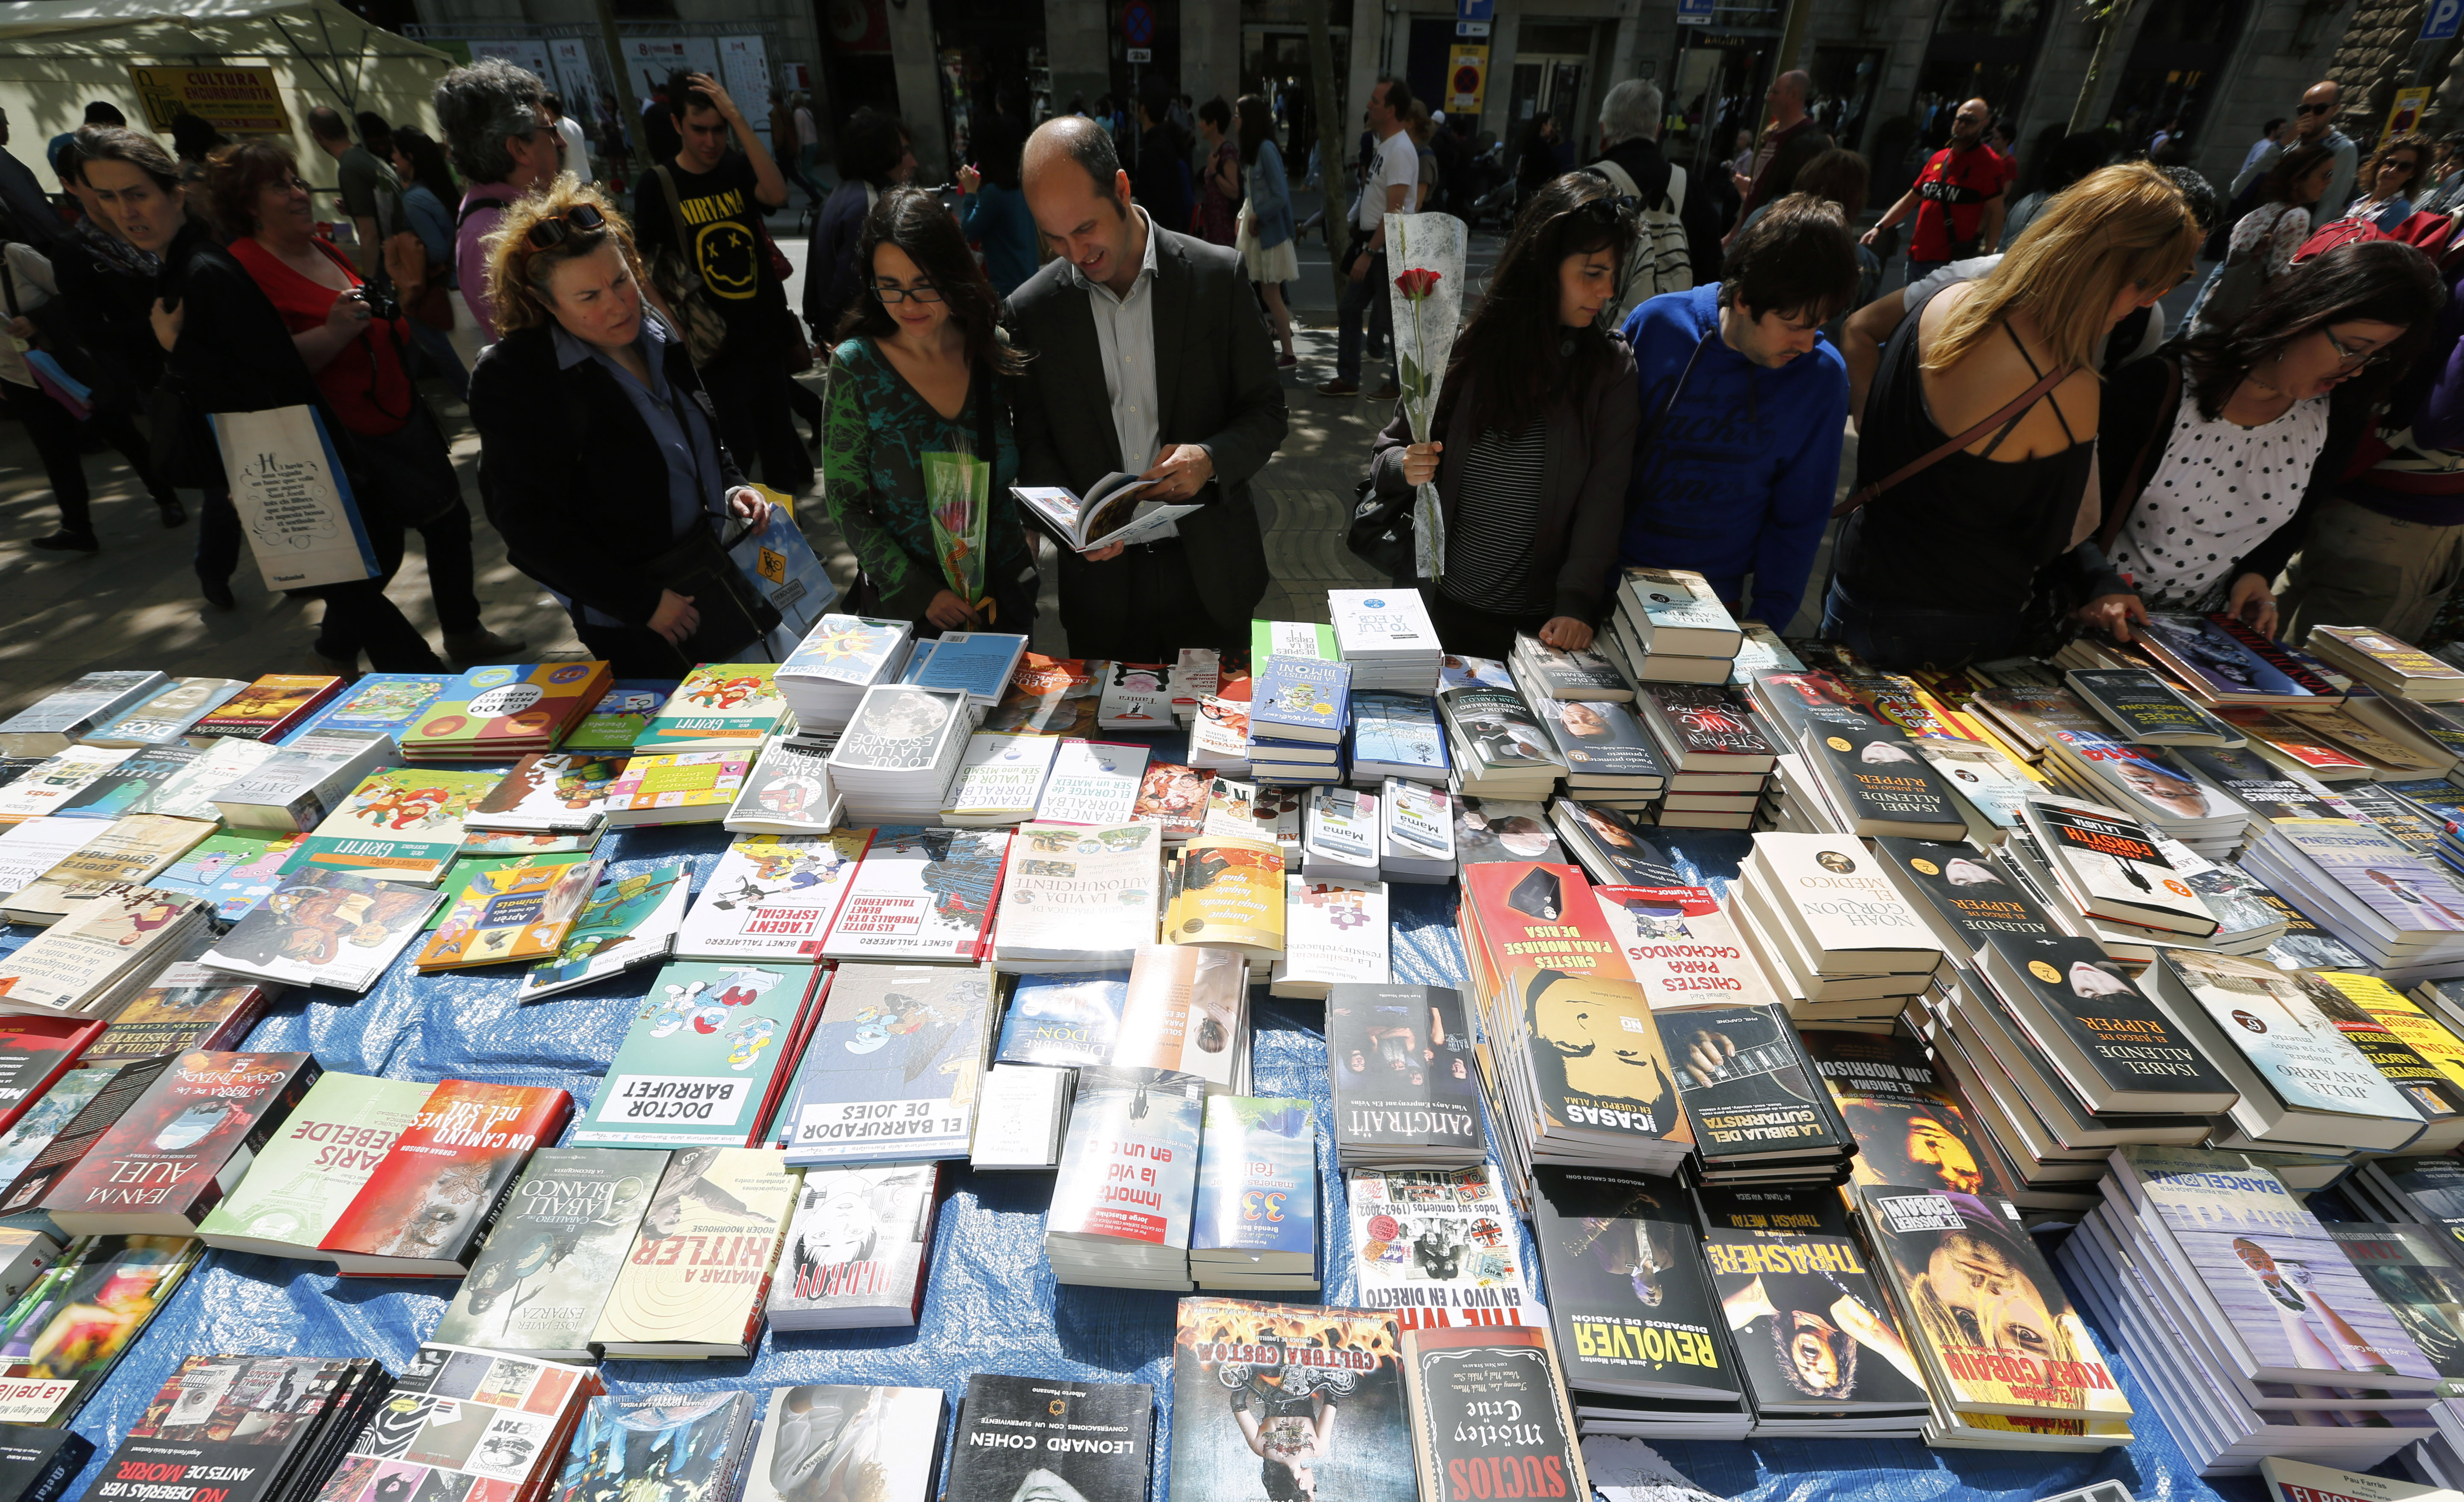 People look books in a stand at Las Ramblas street during traditional Sant Jordi's day celebrations in Barcelona